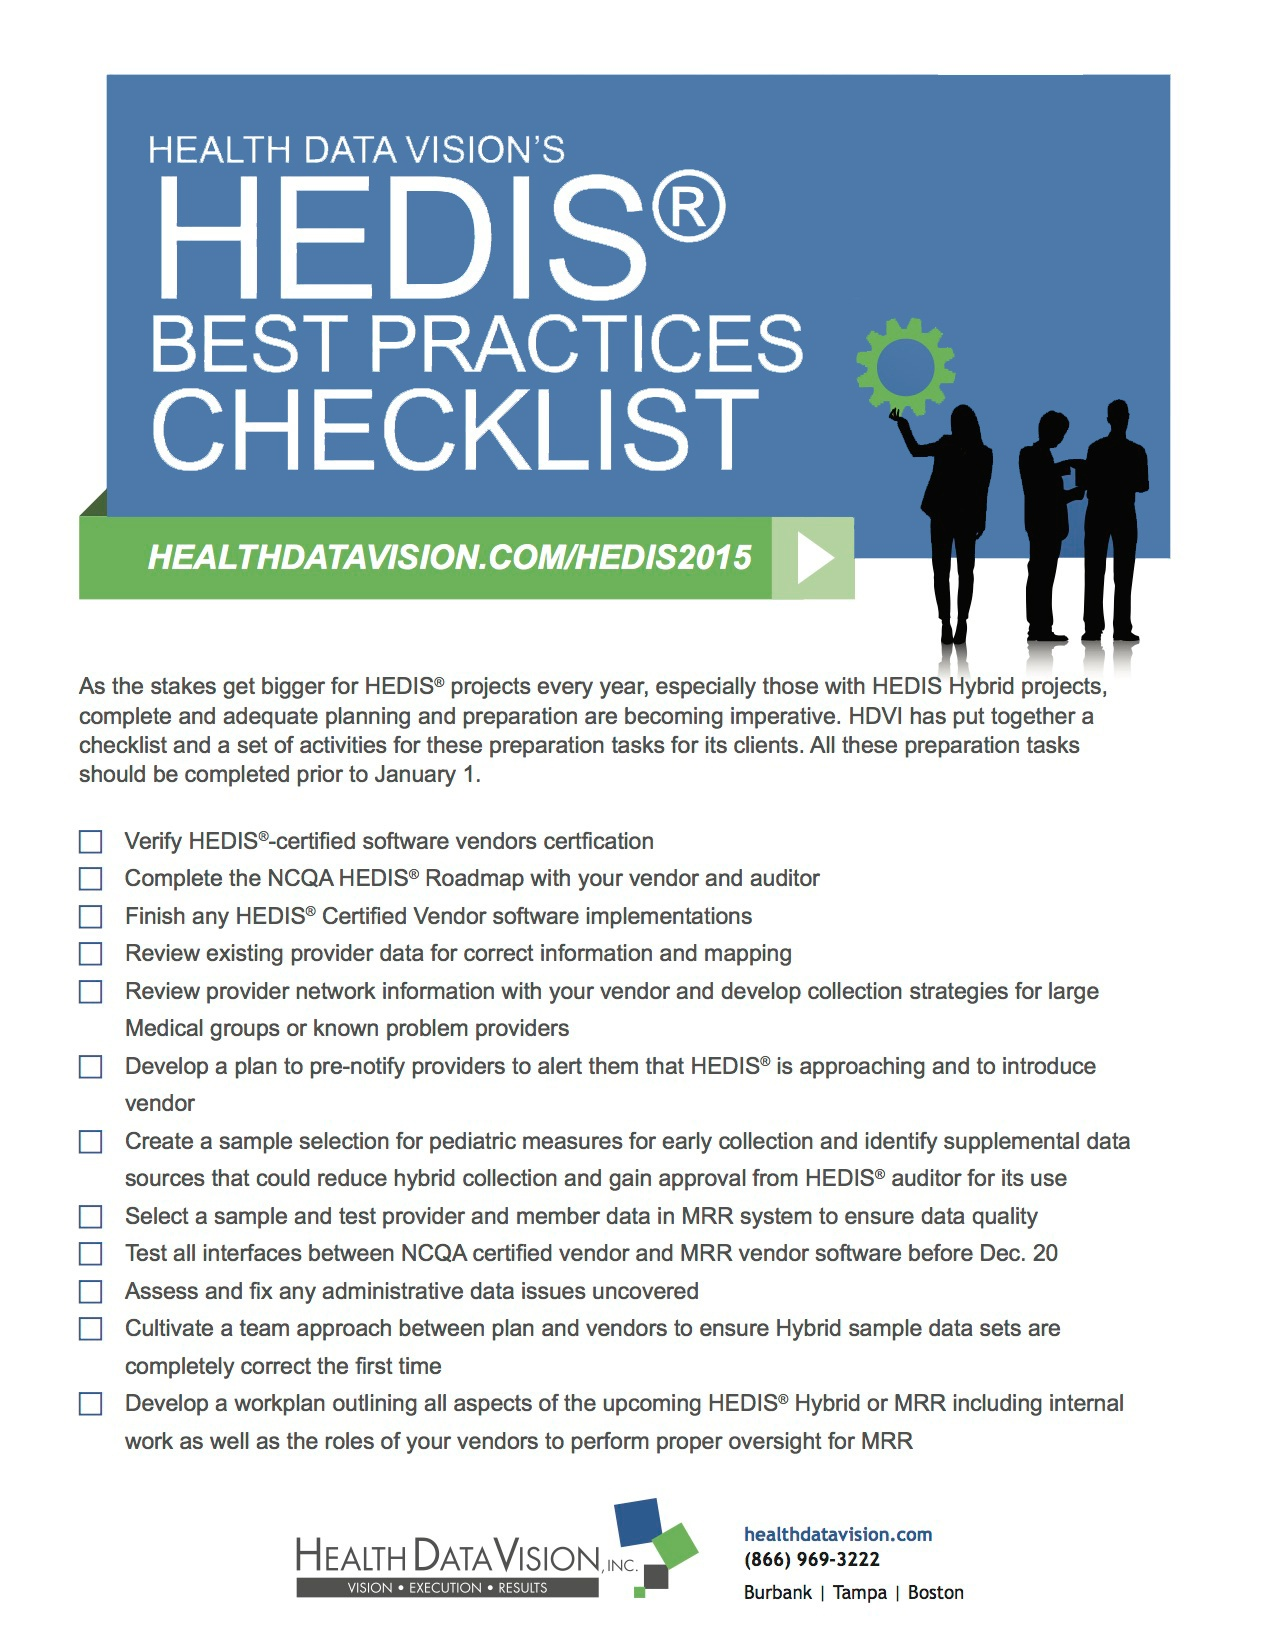 HEDIS_checklist_FINAL.jpg